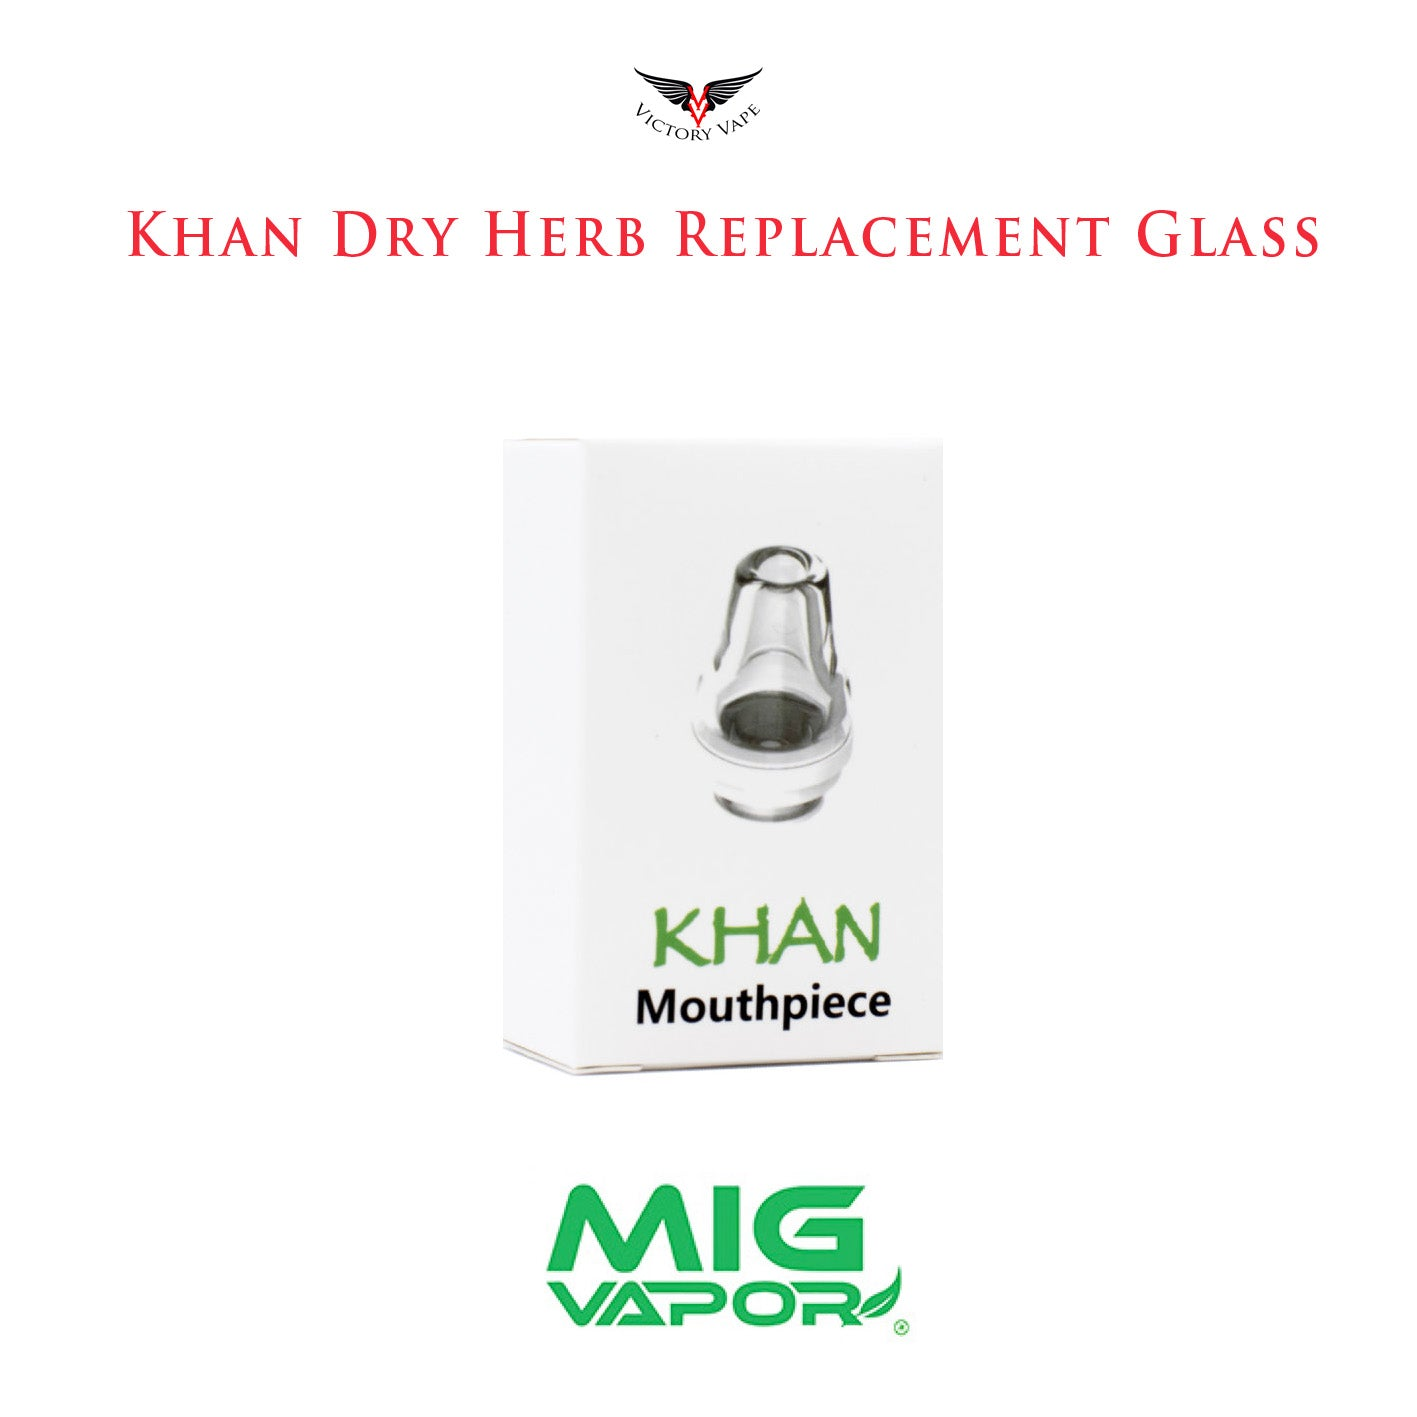 The Khan Dry Herb Glass Mouthpiece Replacement